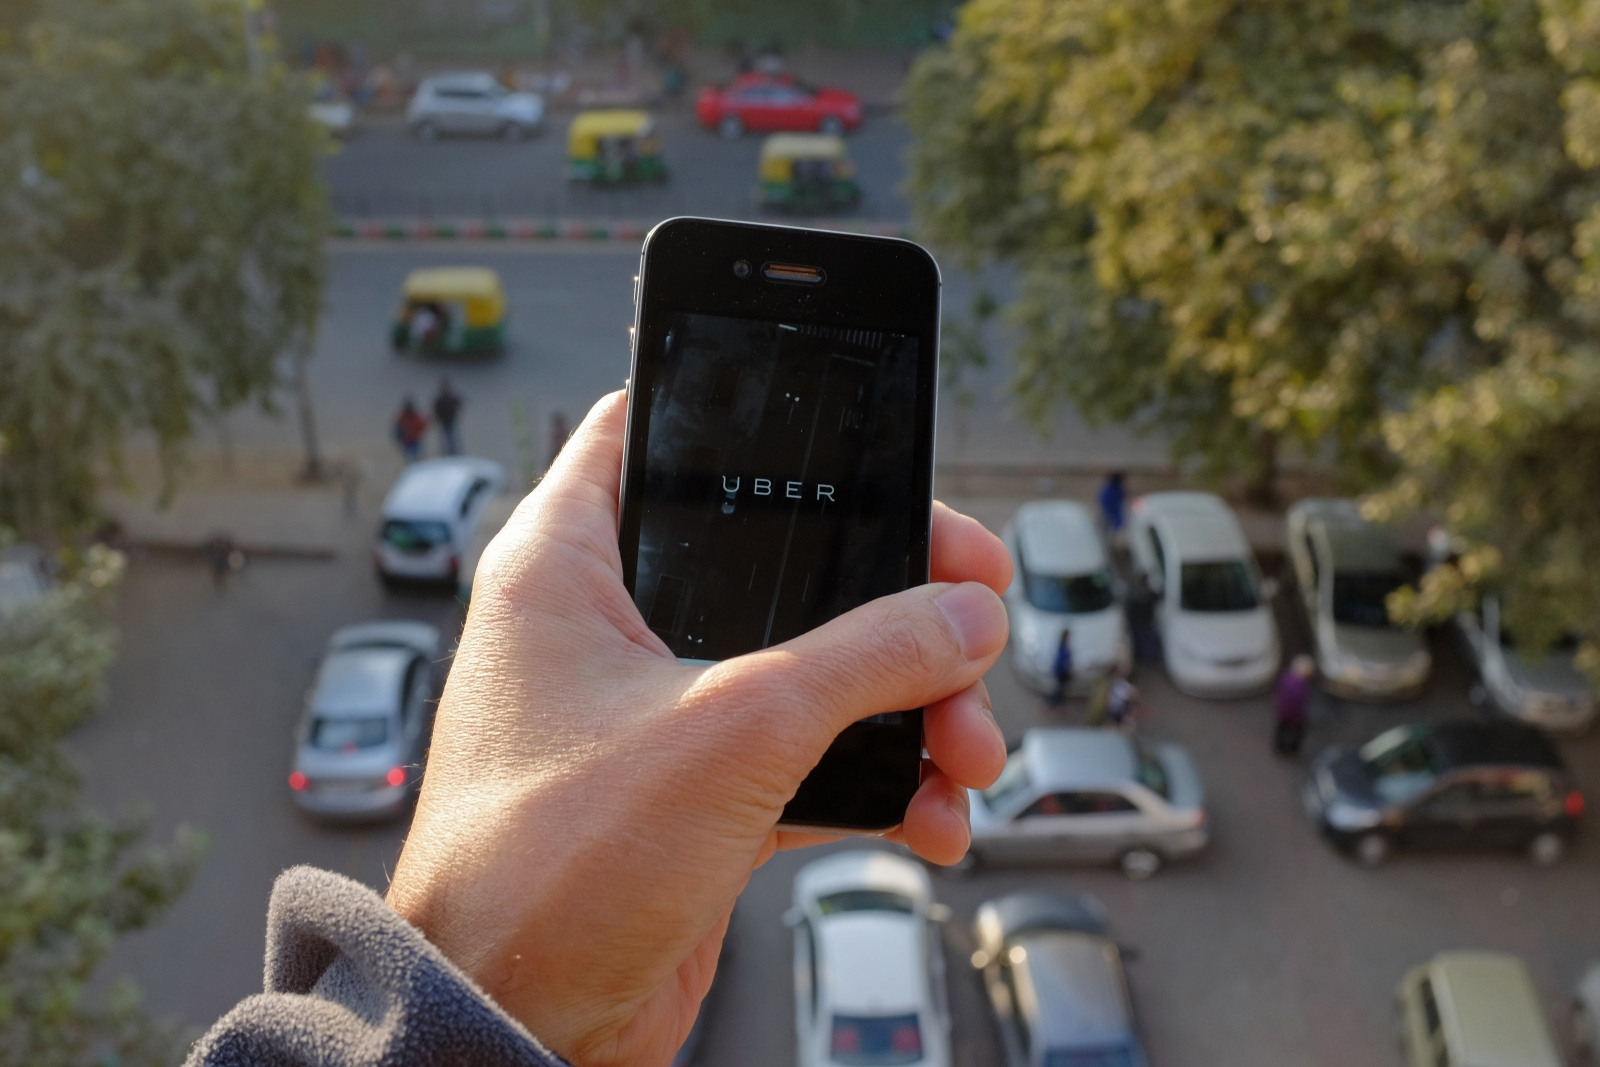 Delhi bans Uber service over alleged rape